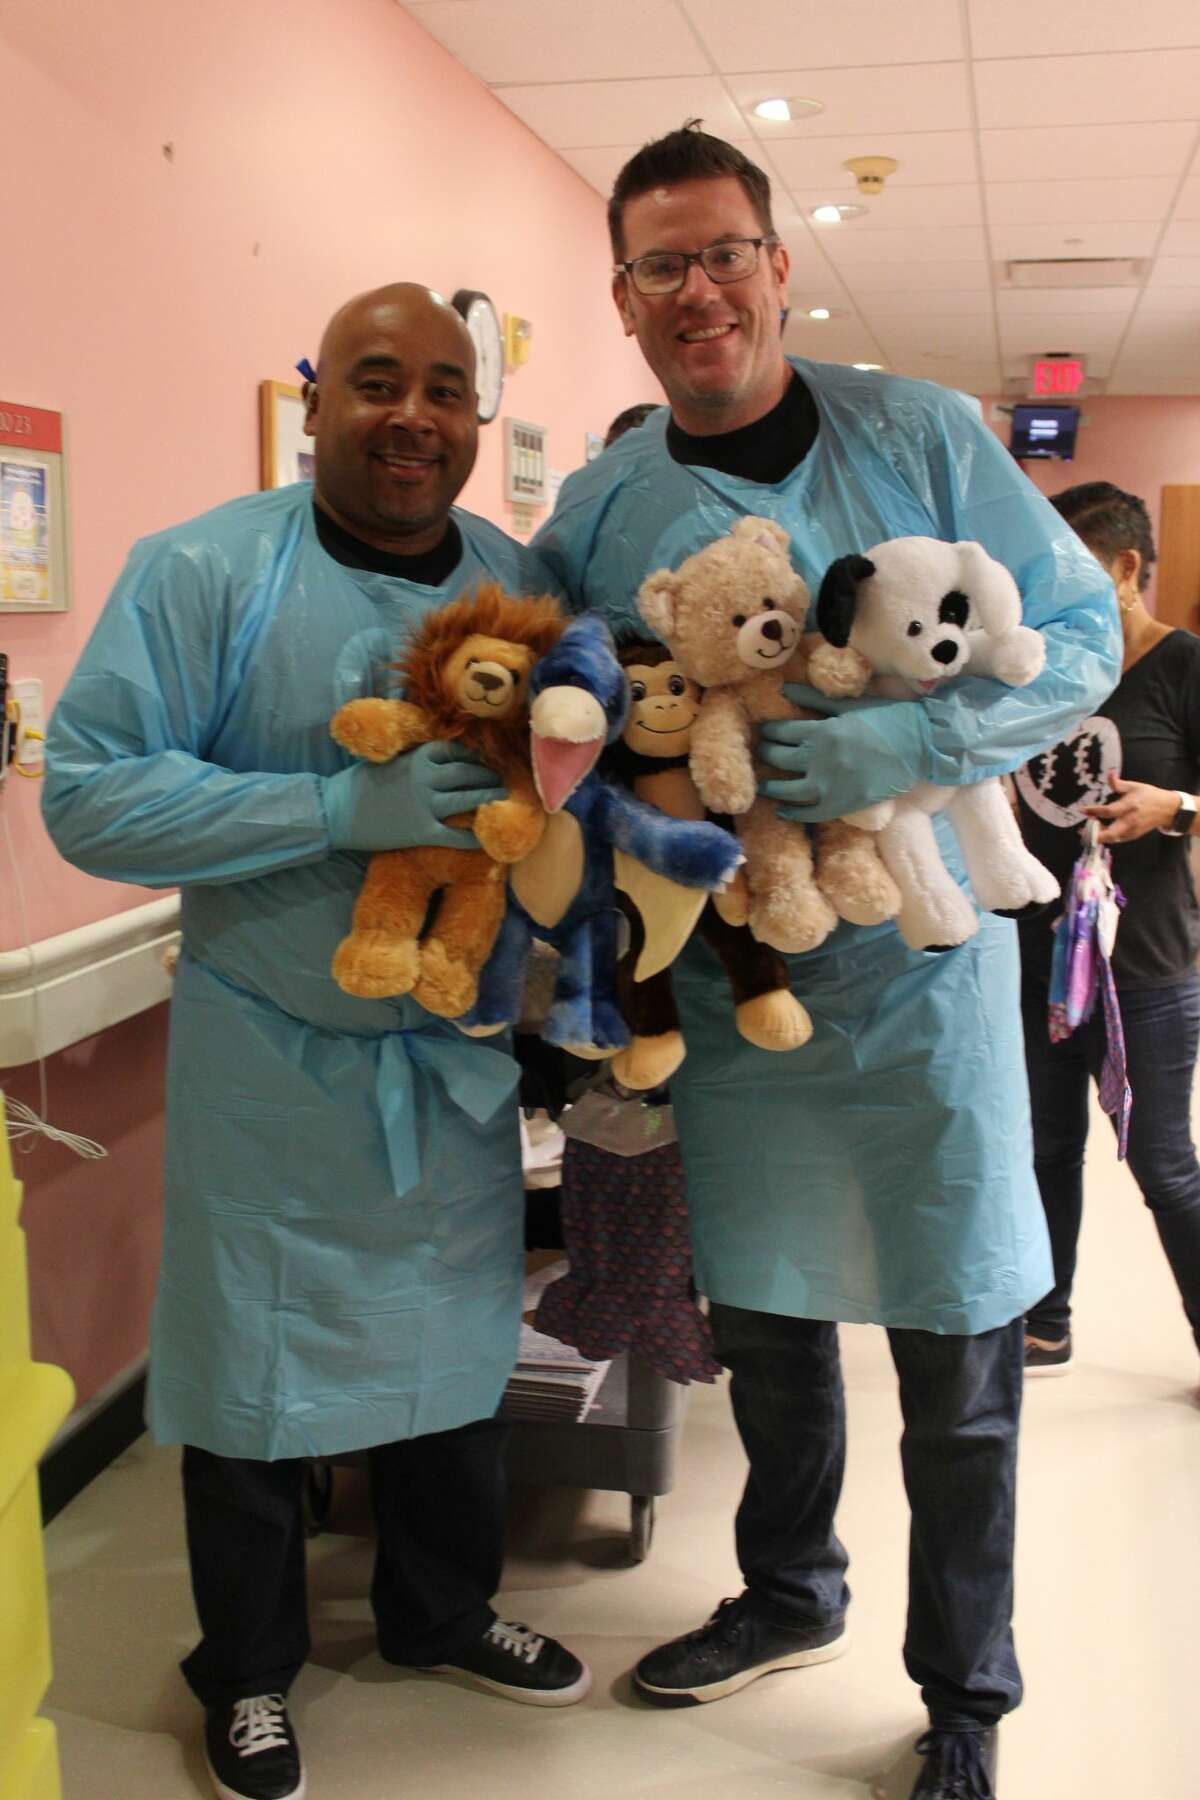 Houston native and MLB umpires Adrian Johnson and Chris Conroy are part of a group of umpires involved in UMPS CARE charities. Johnson, Conroy and their crew visit children's hospitals in all 30 MLB cities to put on Build-a-Bear workshops for the kids.